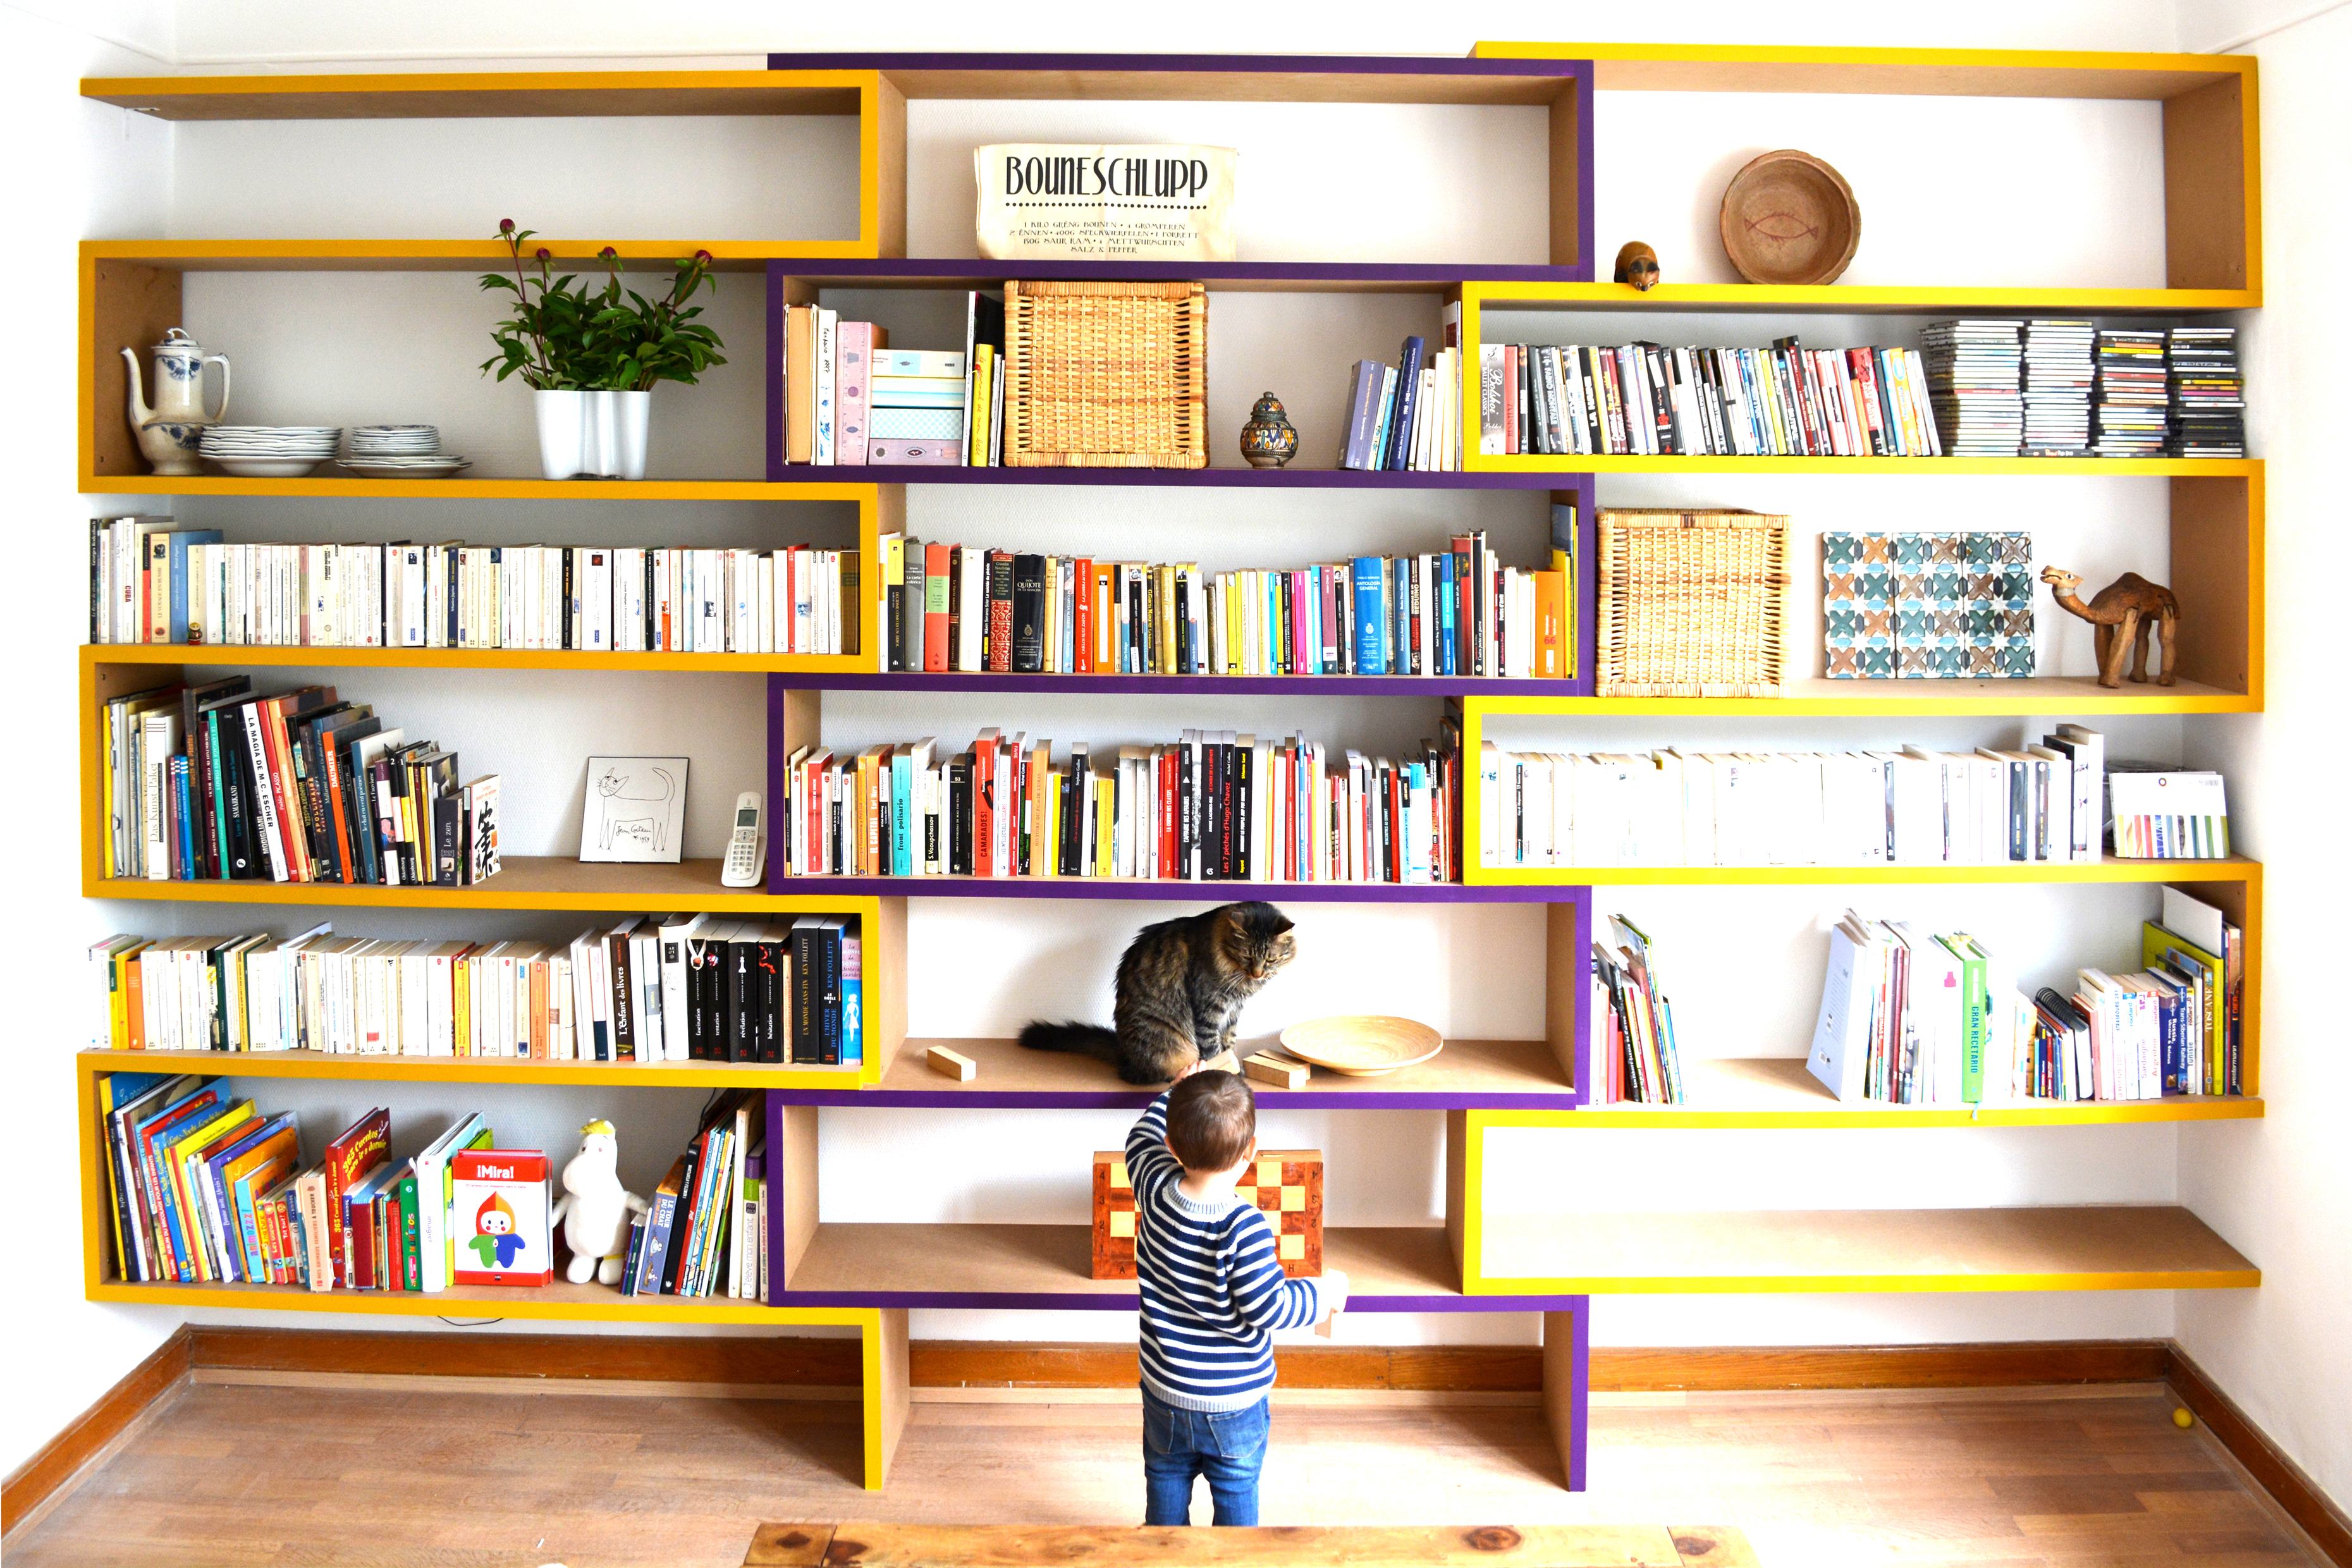 Luxembourg bookcase guerrero architecte s rl luxembourg for Concours ministere interieur